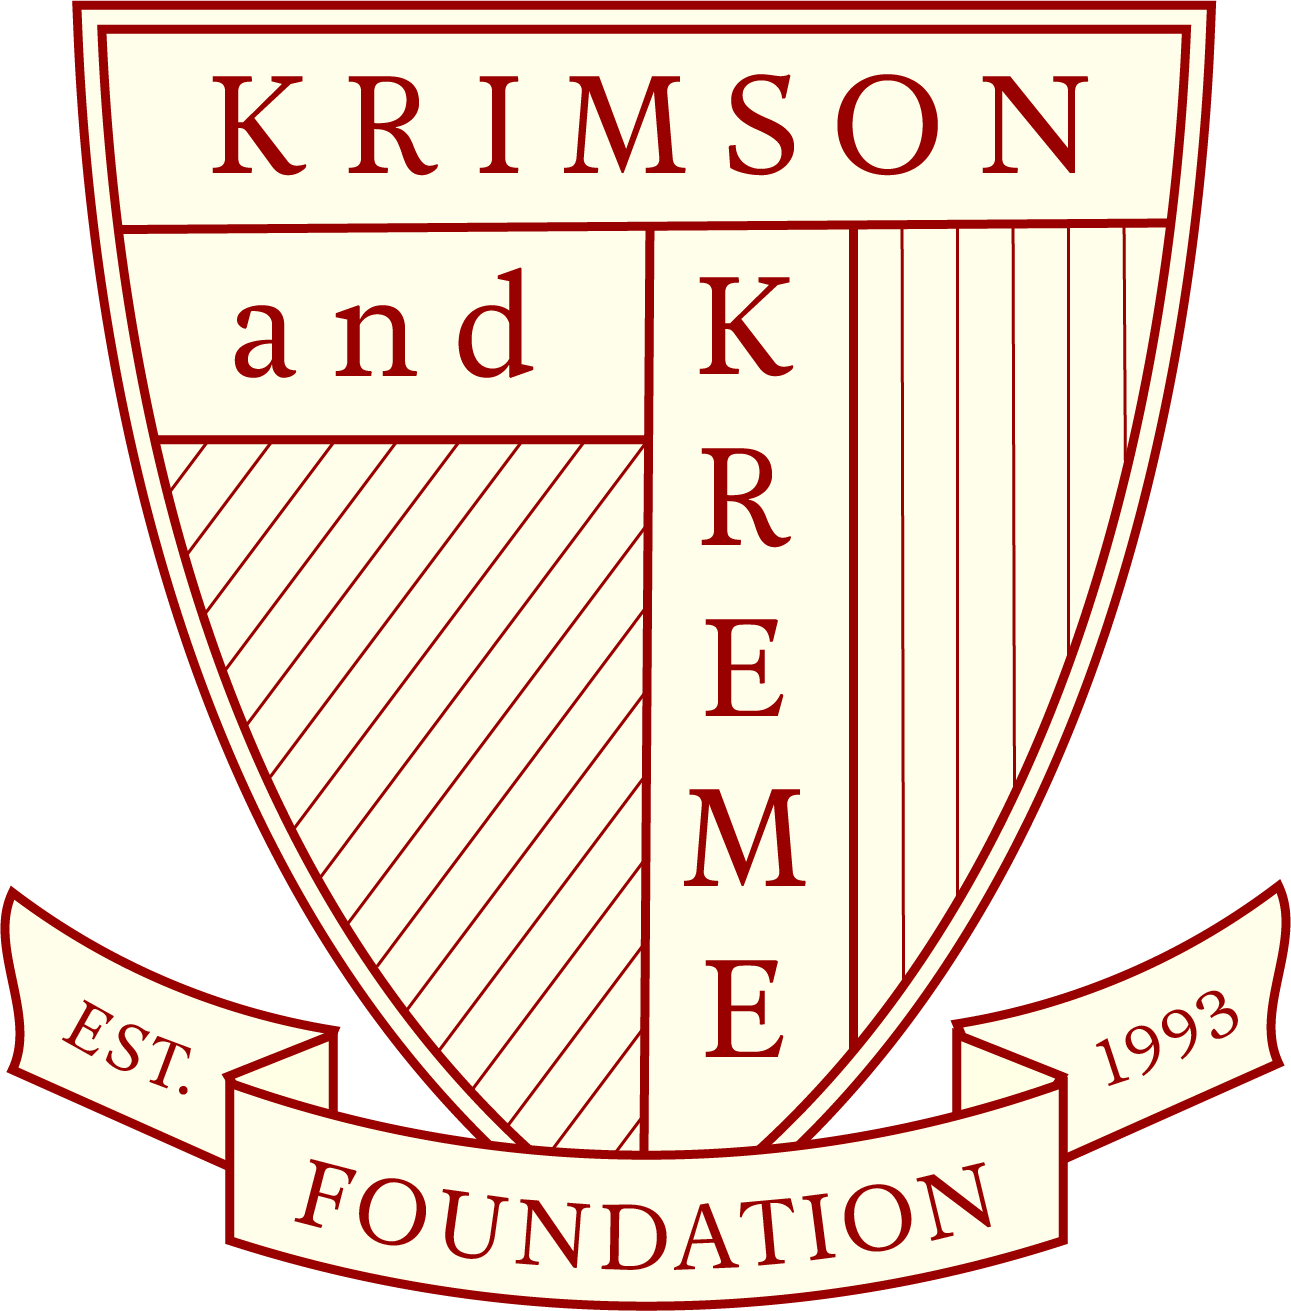 KRIMSON and KREME FOUNDATION